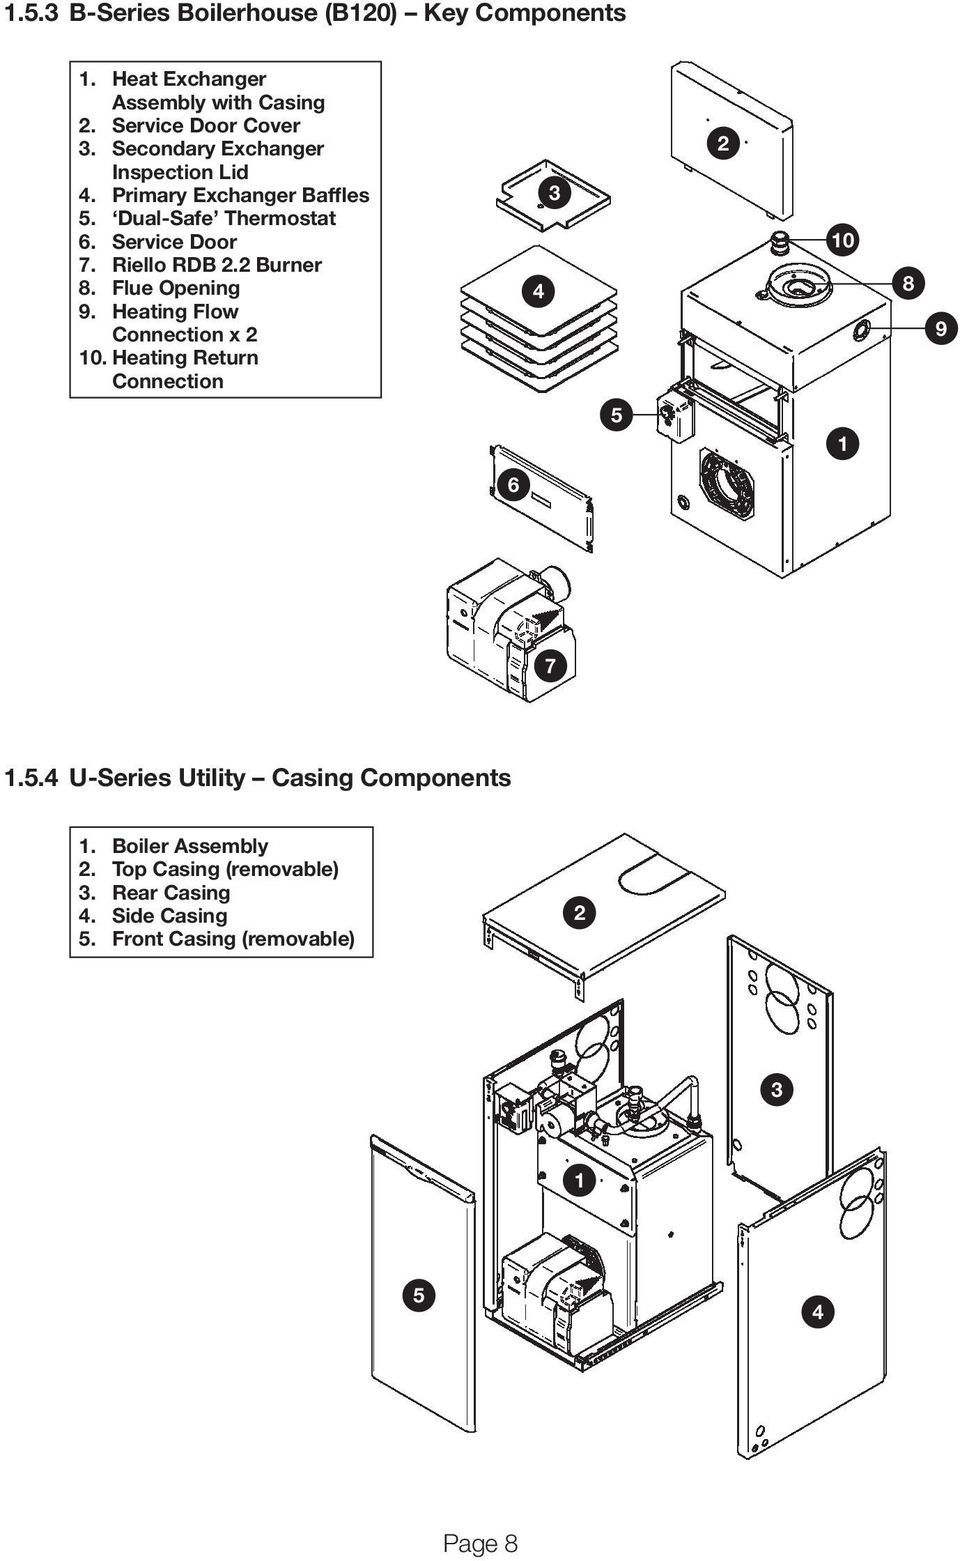 20 technical details 21 combi sequence of operation flow chart 2 burner 8 flue opening 9 heating flow connection x 2 10 heating cheapraybanclubmaster Gallery